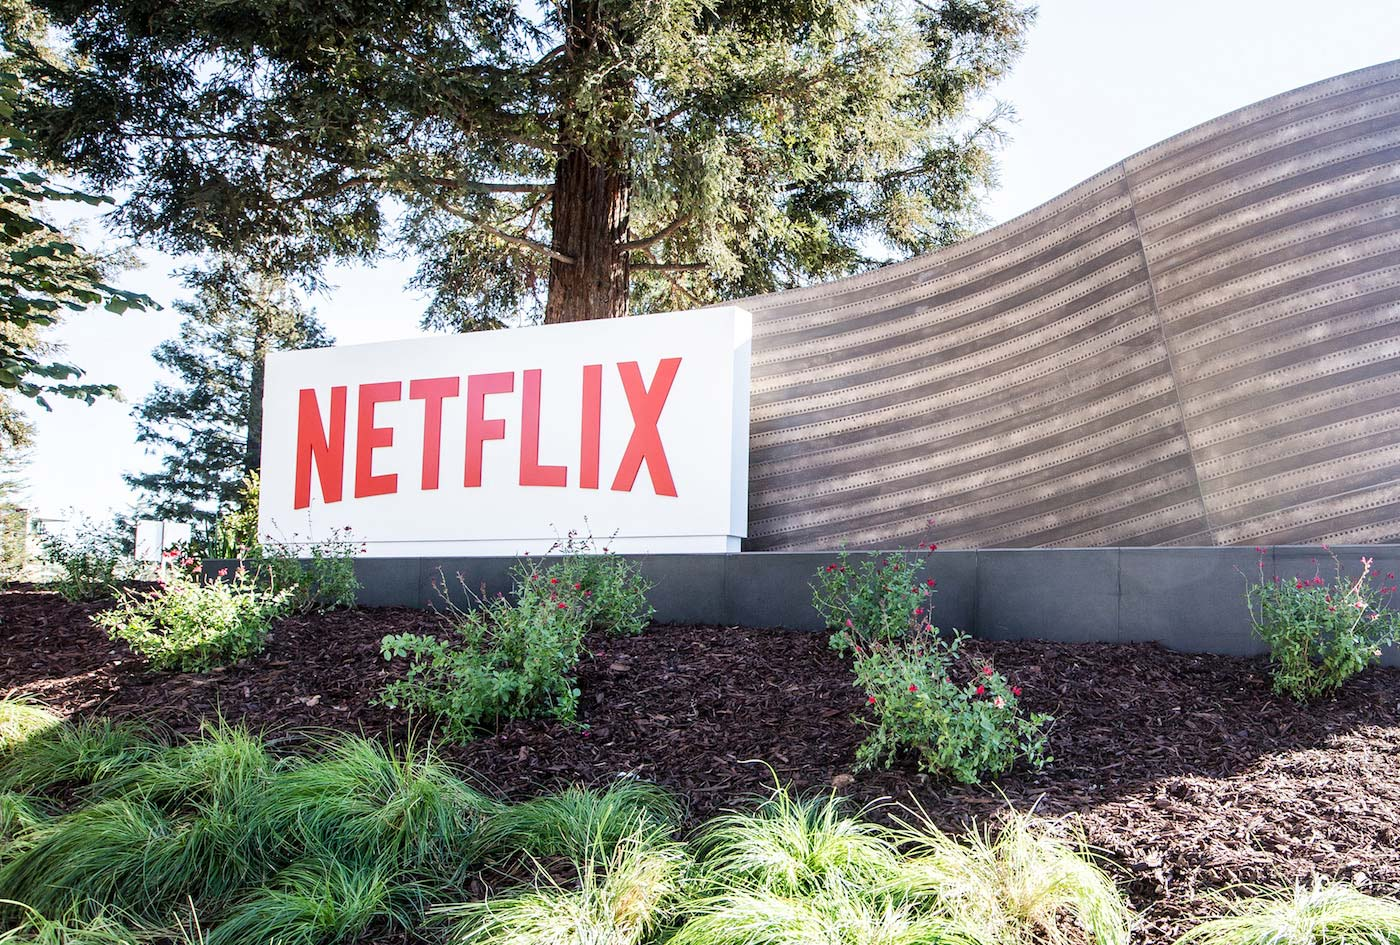 Netflix has successfully blocked users from watching content from other countries